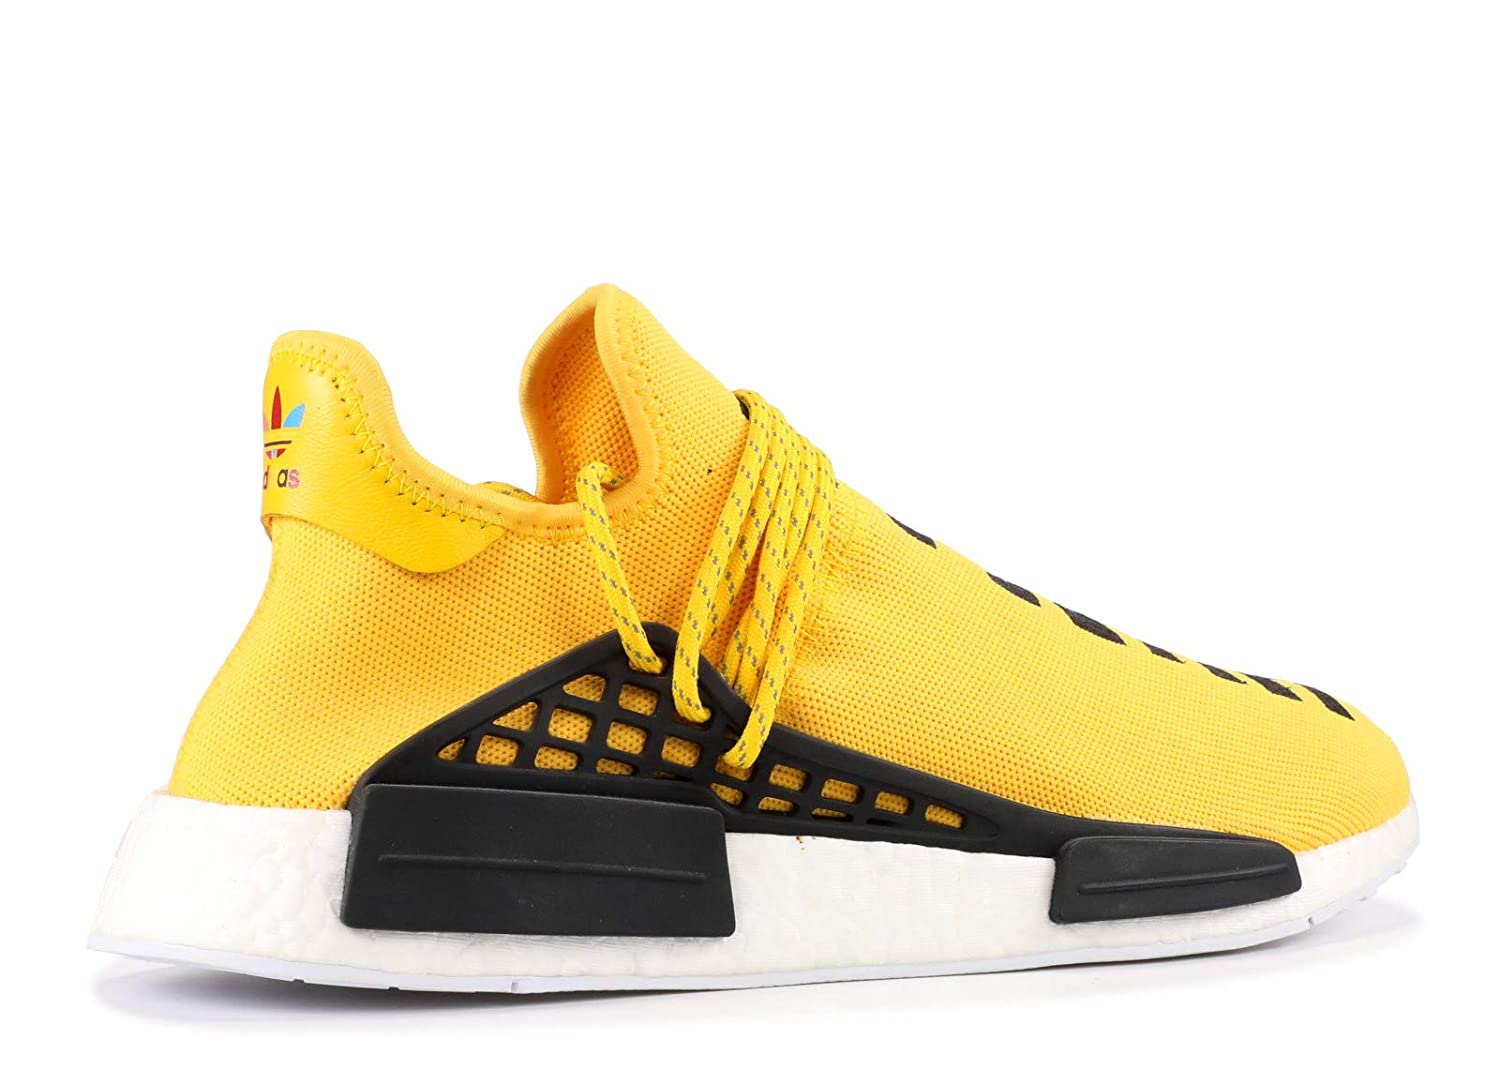 Amazon.com | adidas Pw Human Race NMD Human Race - Bb0619 - Size 10 Yellow, Black | Athletic